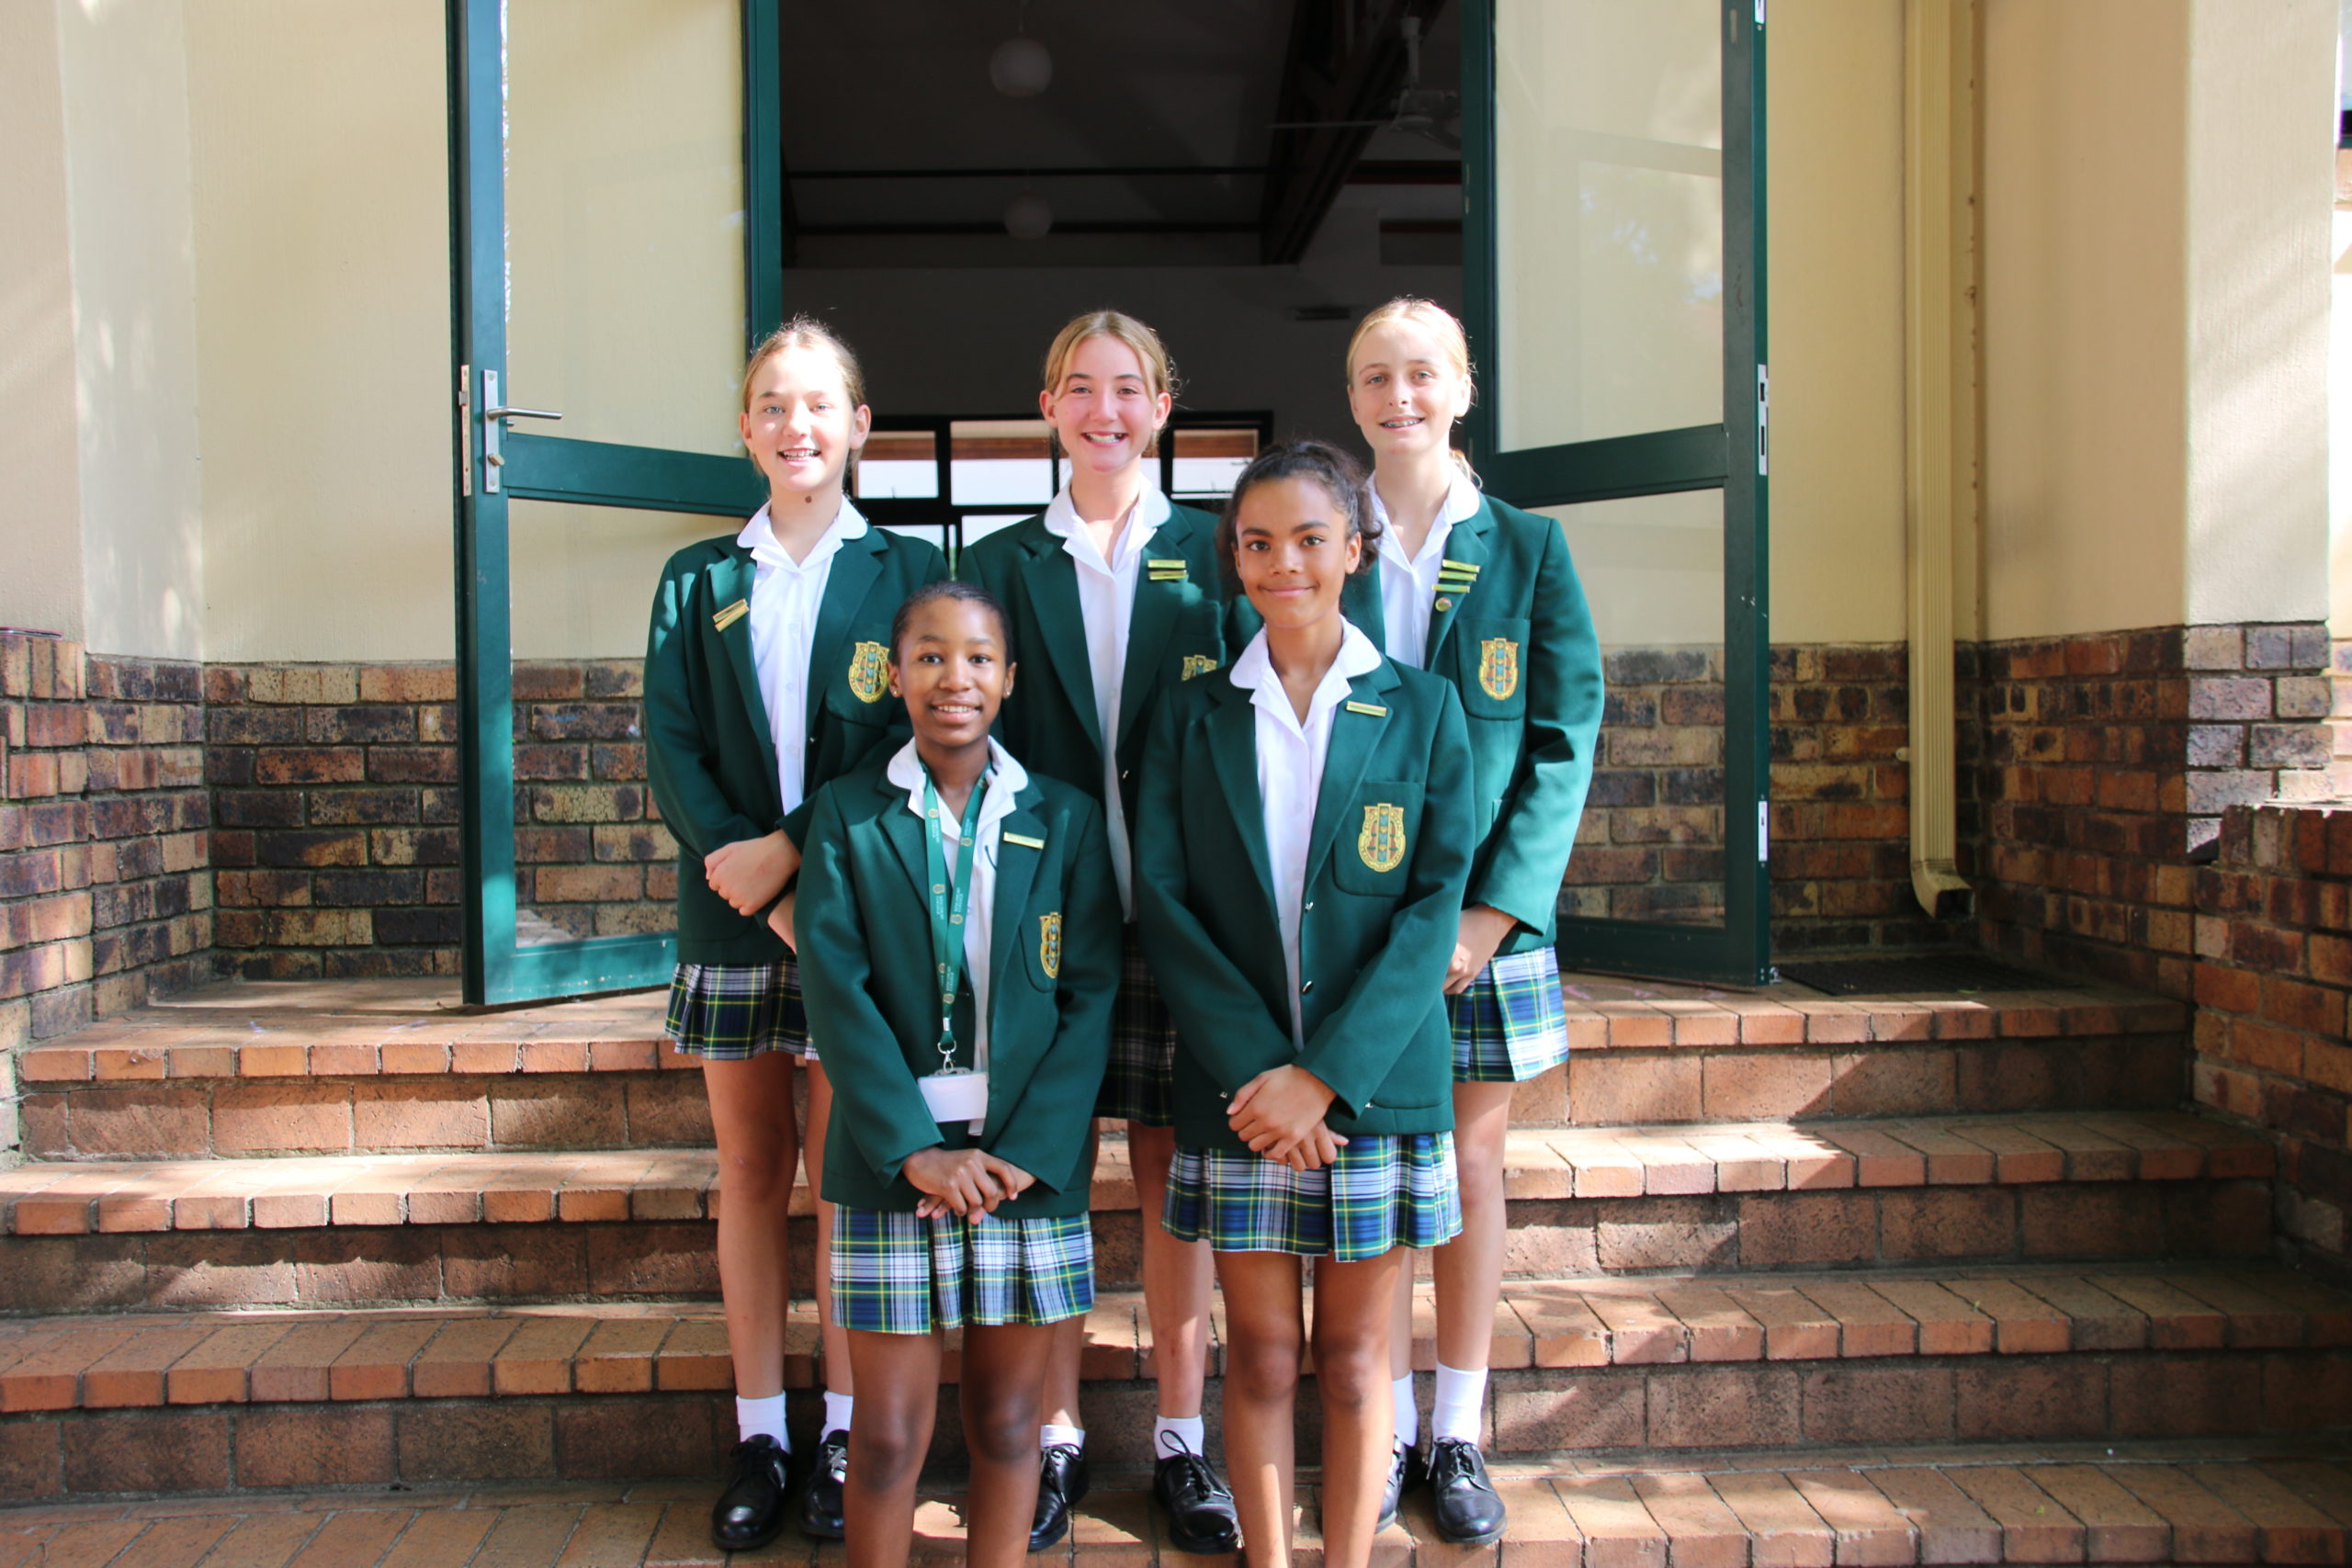 HALL SPRITUAL COMMITTEE scaled Kingsmead College